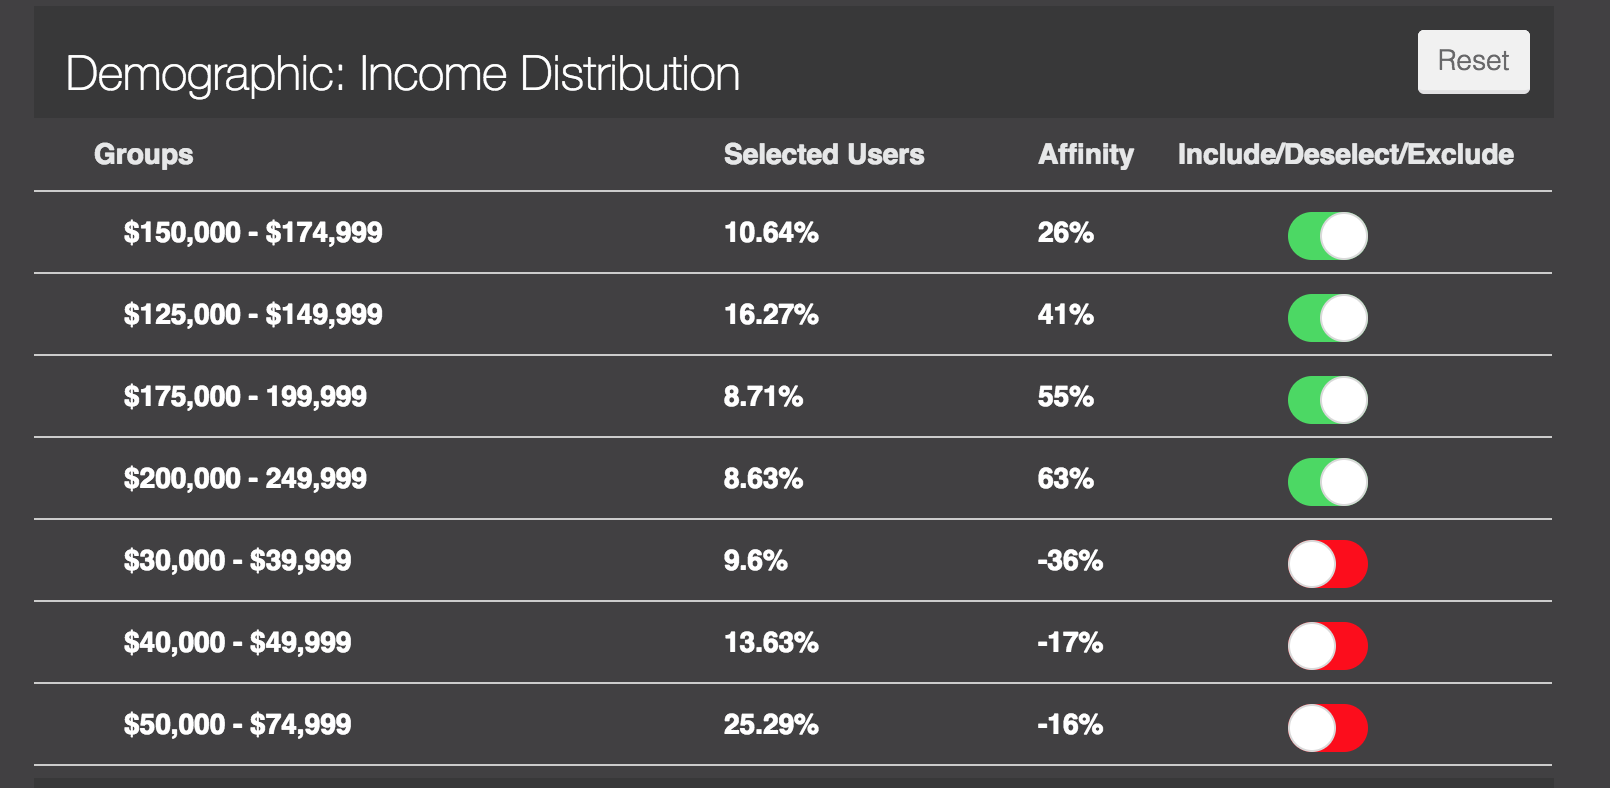 Demographic: Income Distribution Top Insights